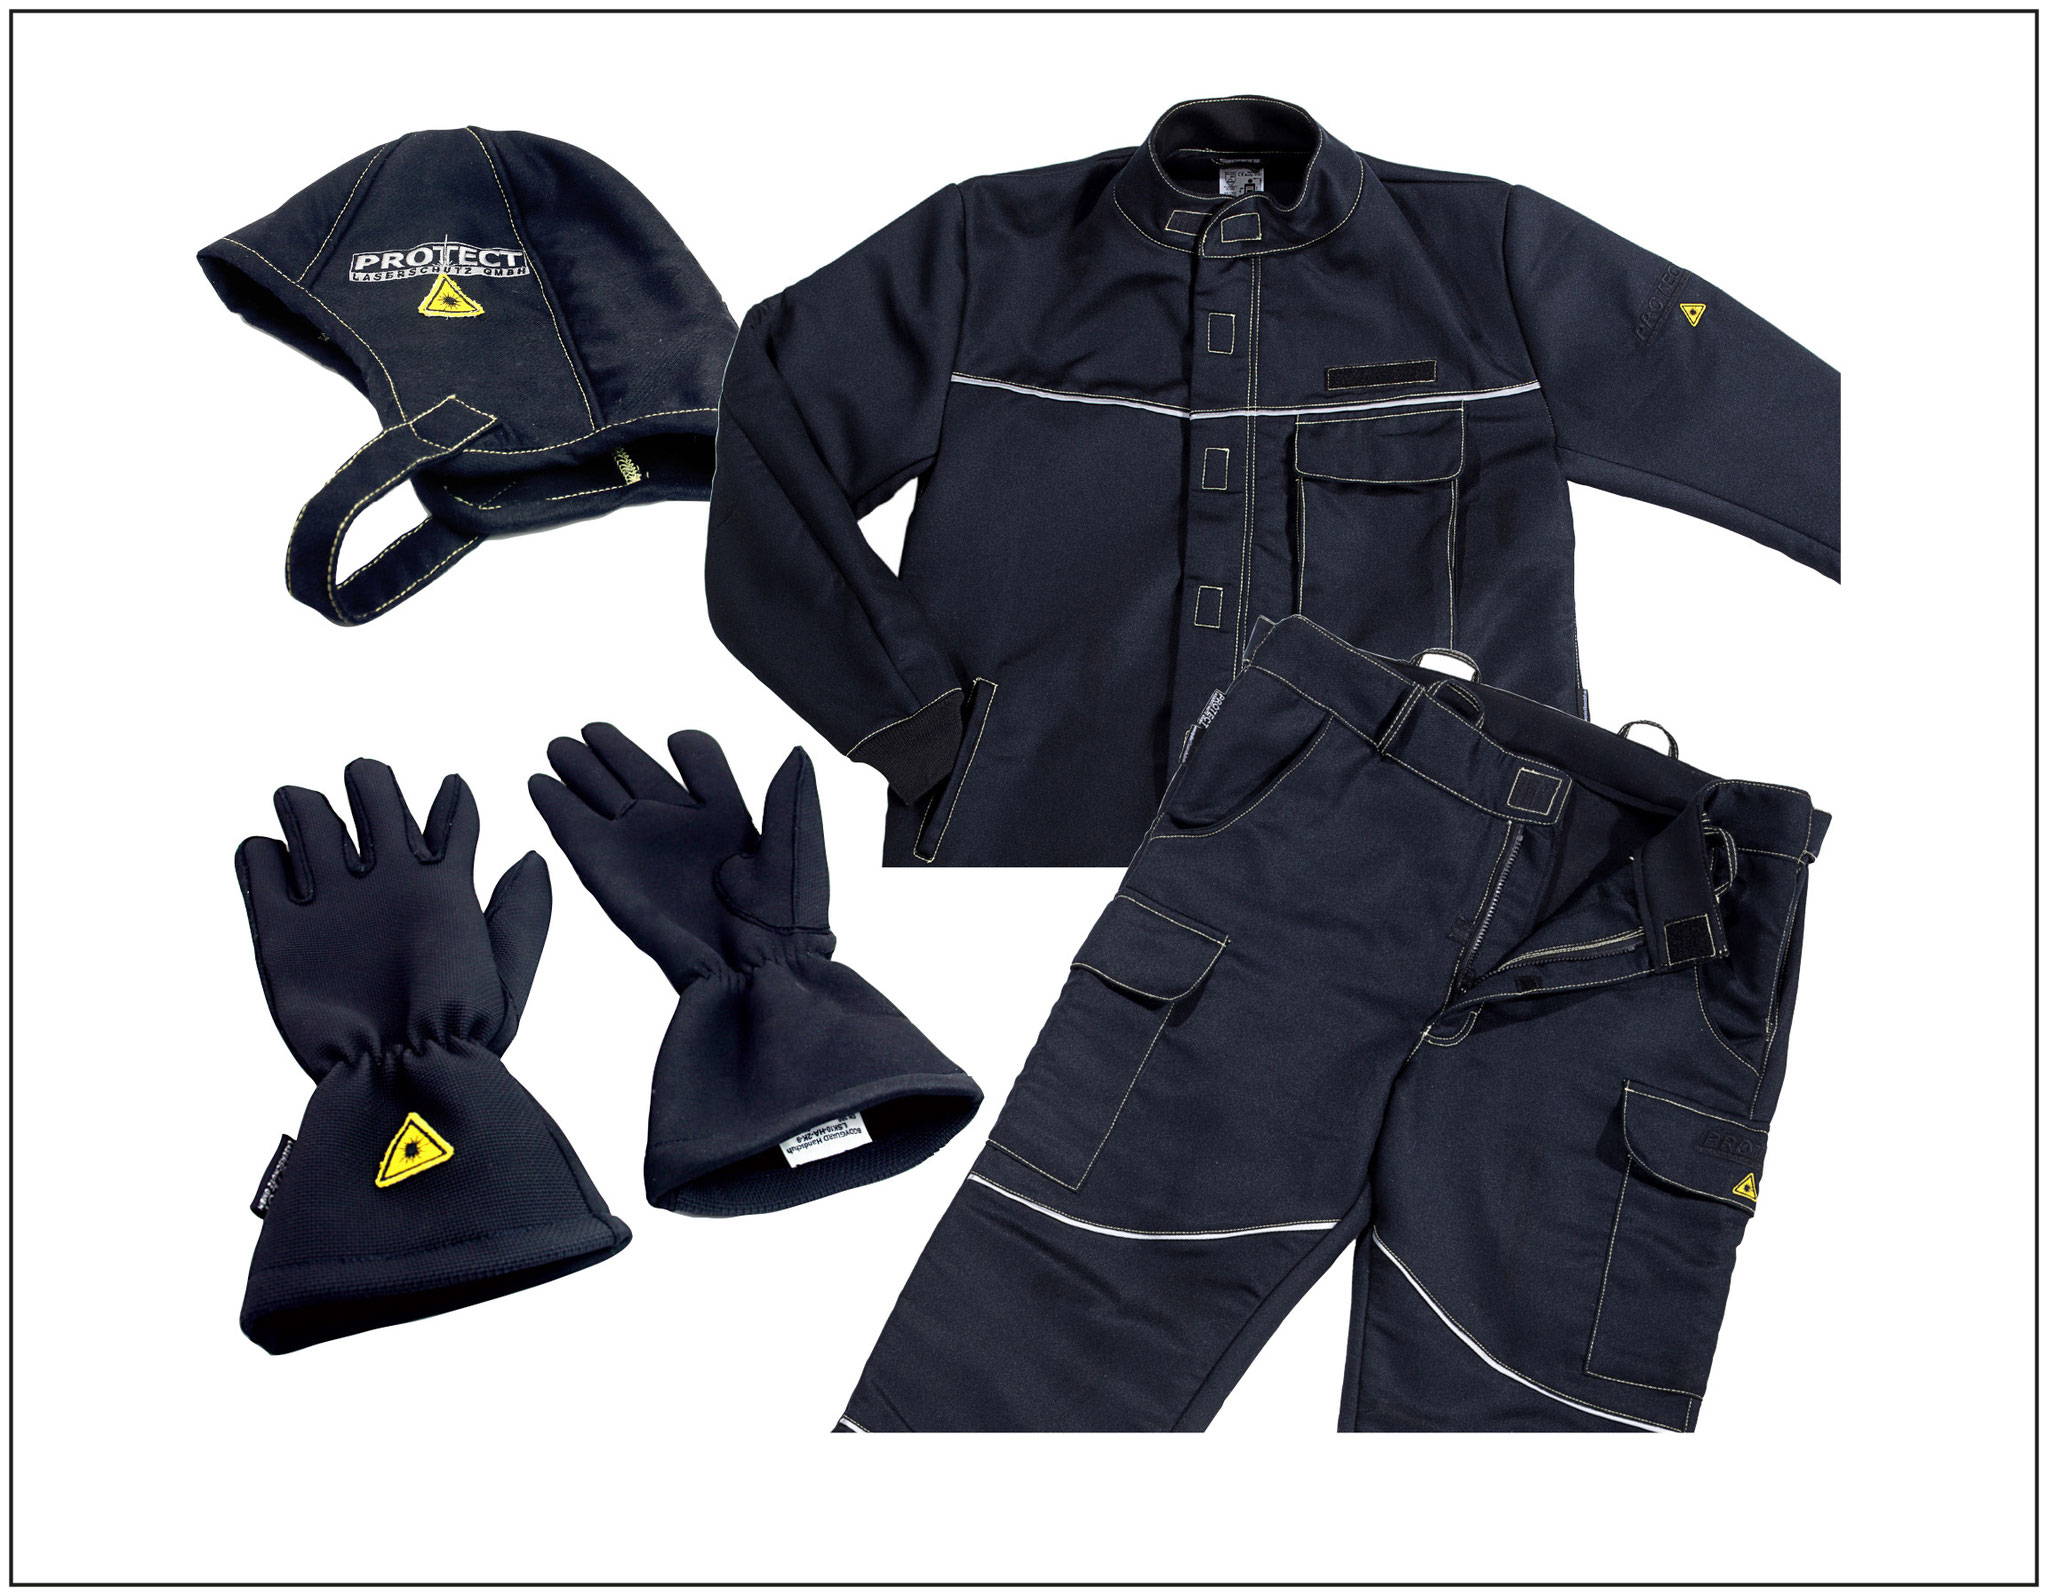 Laser safety clothing, gloves and headgear BODYGUARD for  laser and welding protection, certified according to EN 11611  and 11612